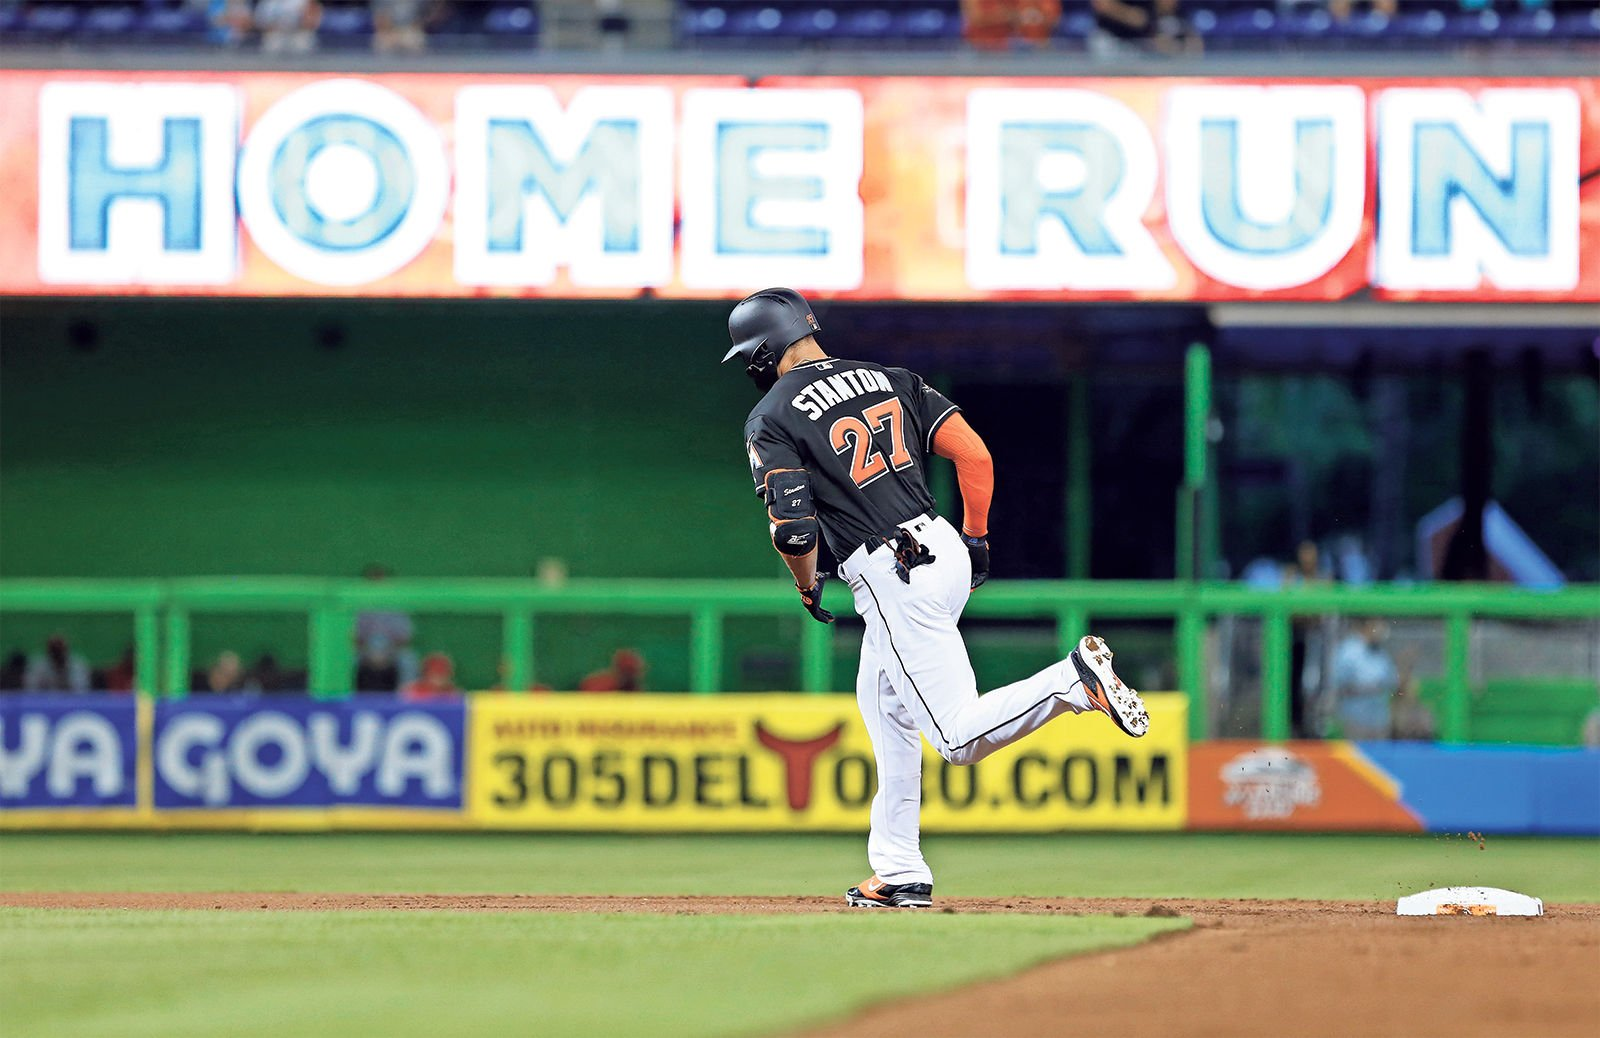 Giancarlo Stanton slugs 55th HR of season; most in majors since 2006